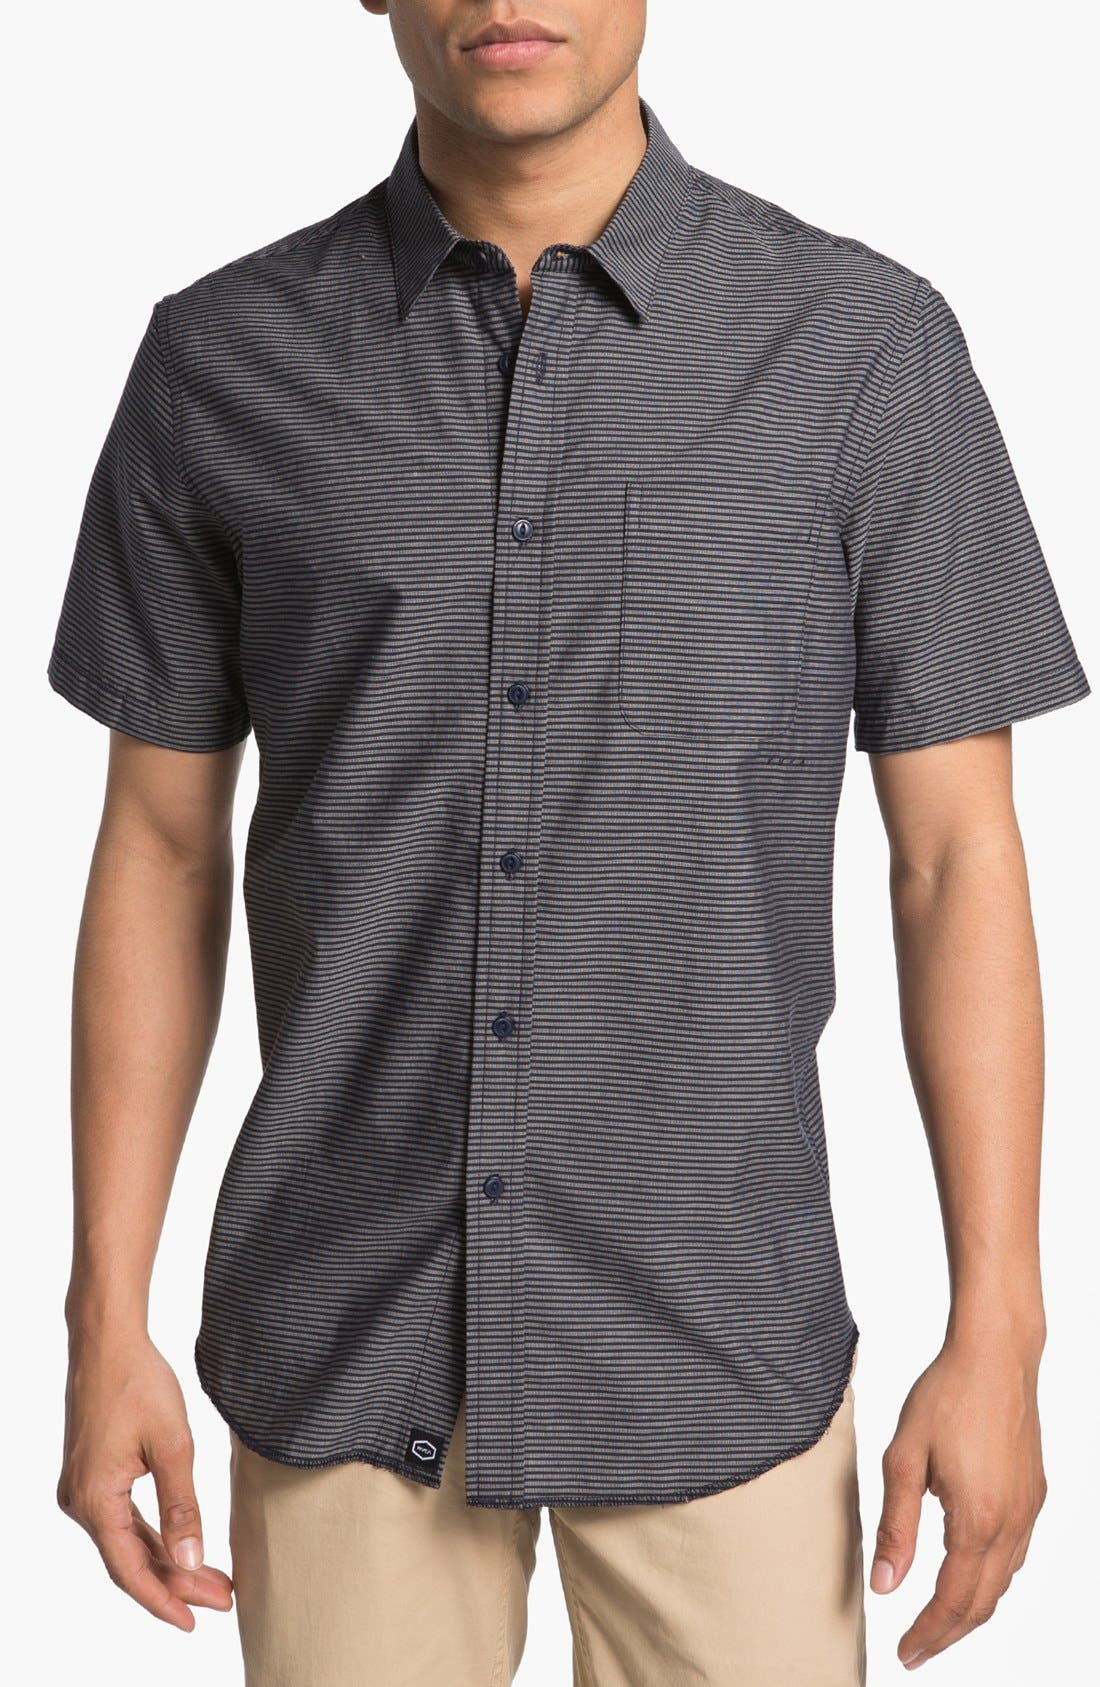 Alternate Image 1 Selected - RVCA 'Dosed' Stripe Woven Shirt